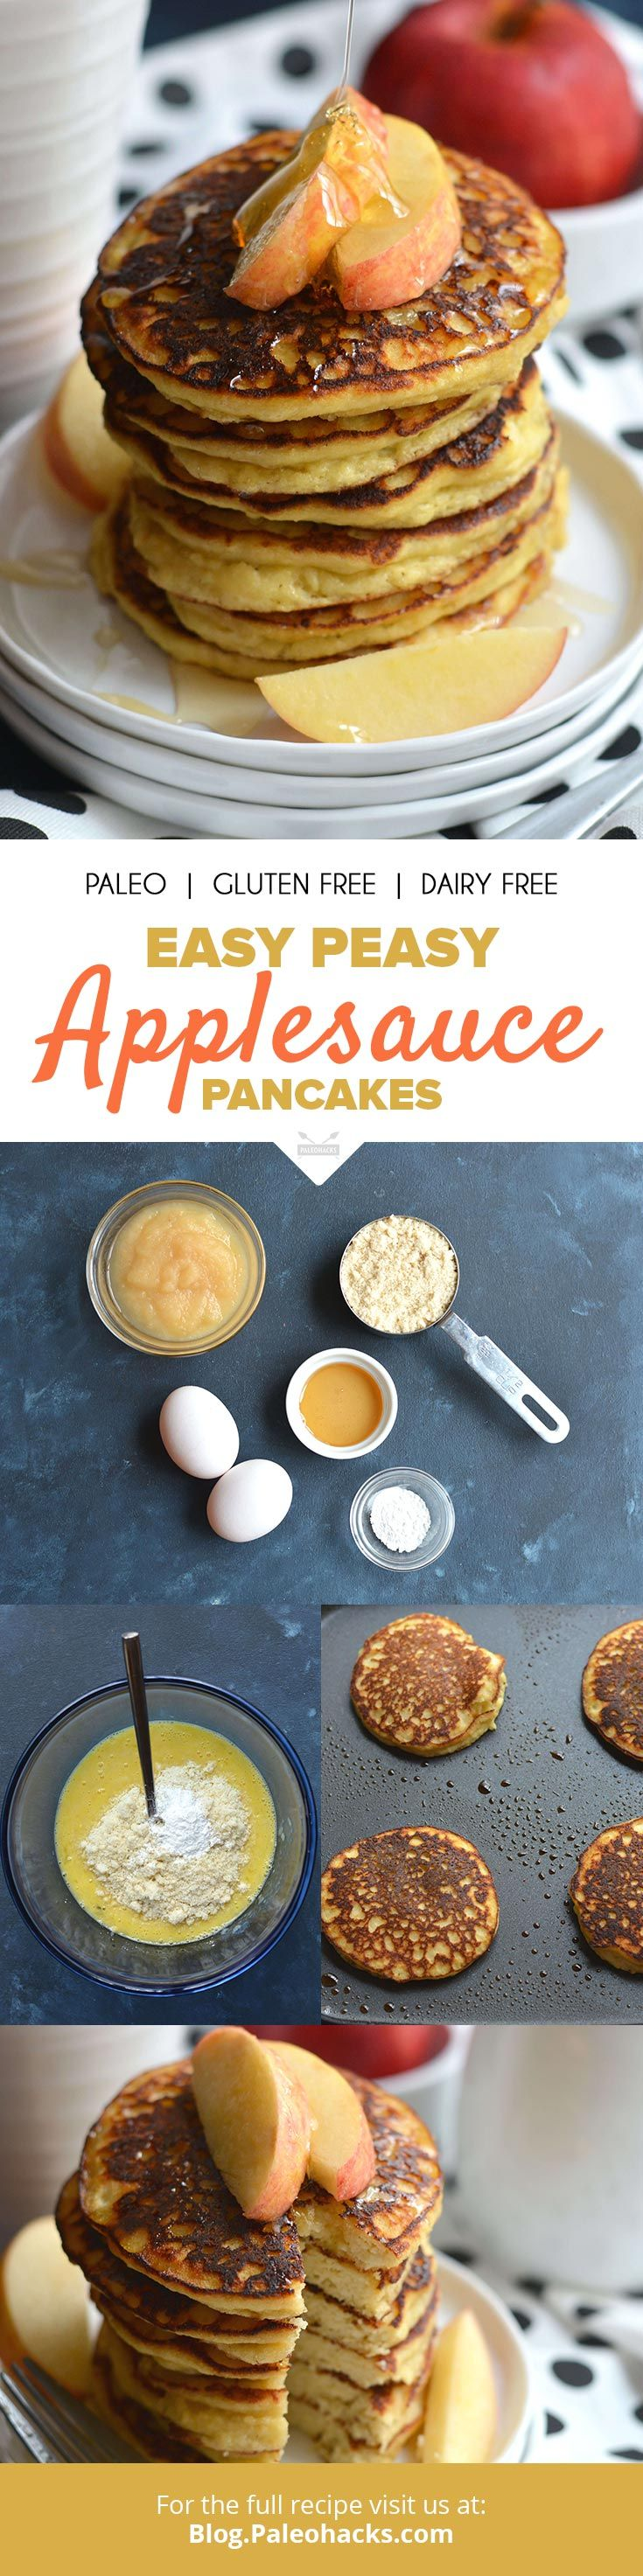 Start your day with a stack of fluffy applesauce pancakes made with only five ingredients! Get the recipe here: http://paleo.co/applesaucepancakes